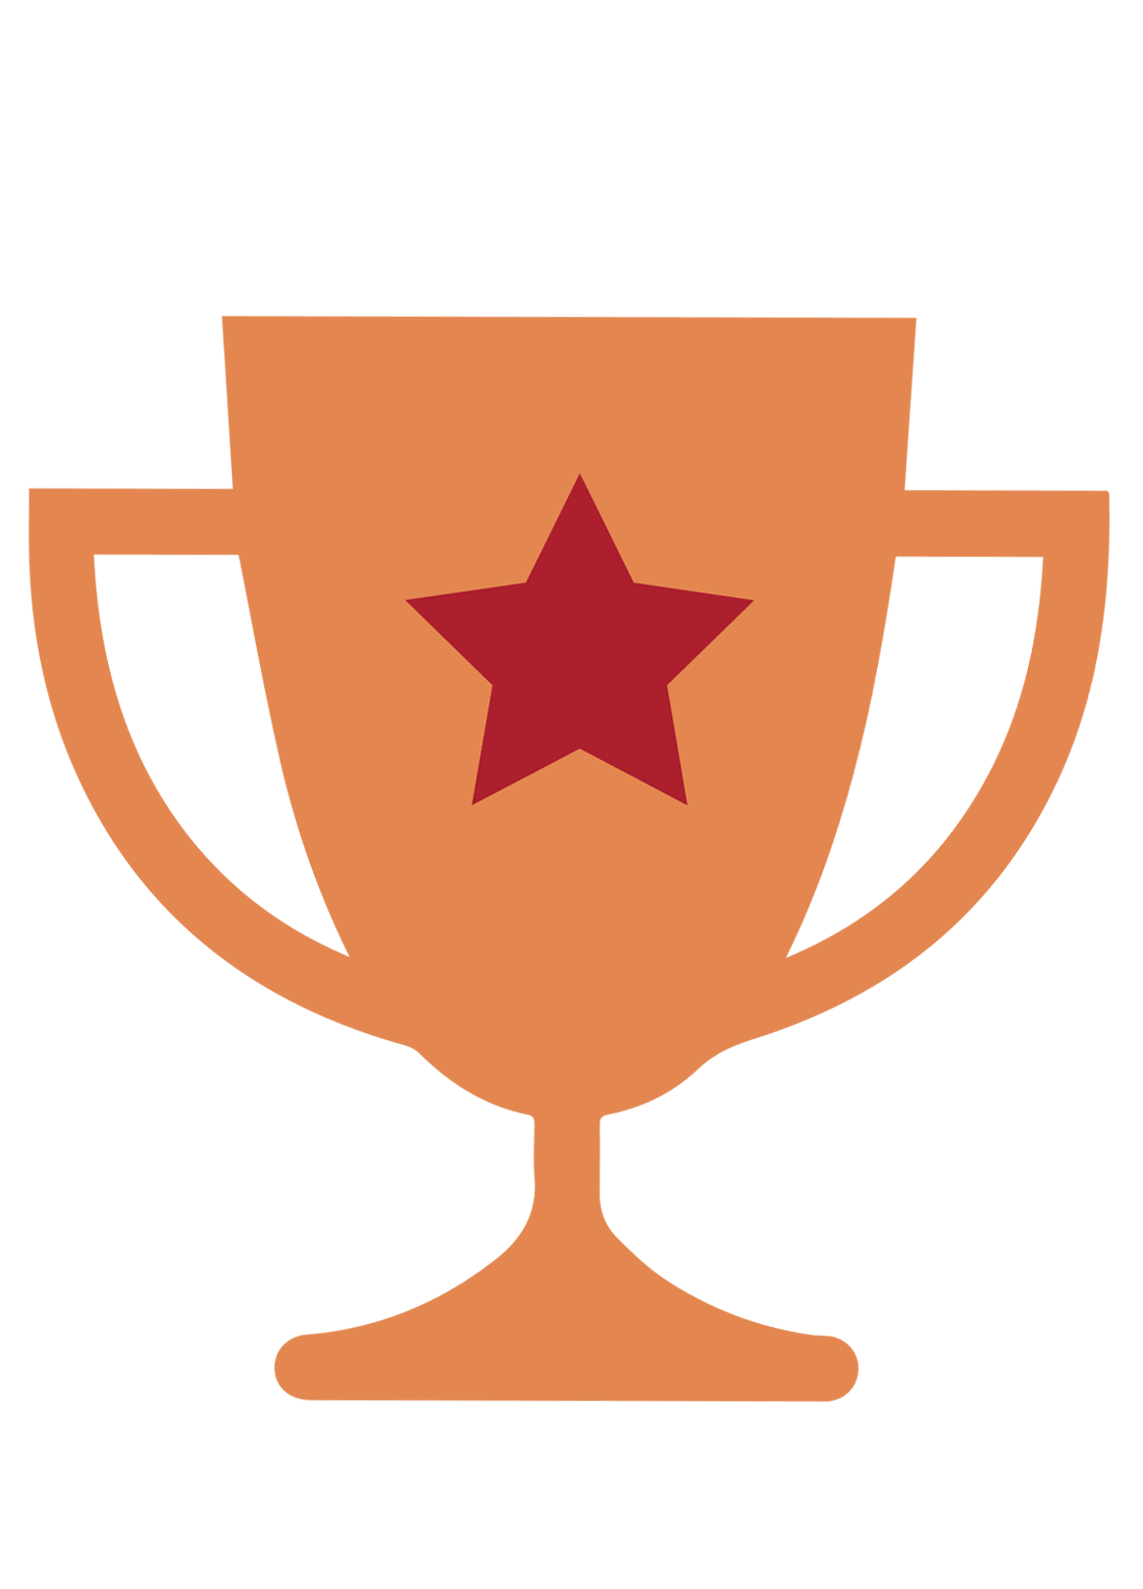 YOH_Illustration-trophy.png